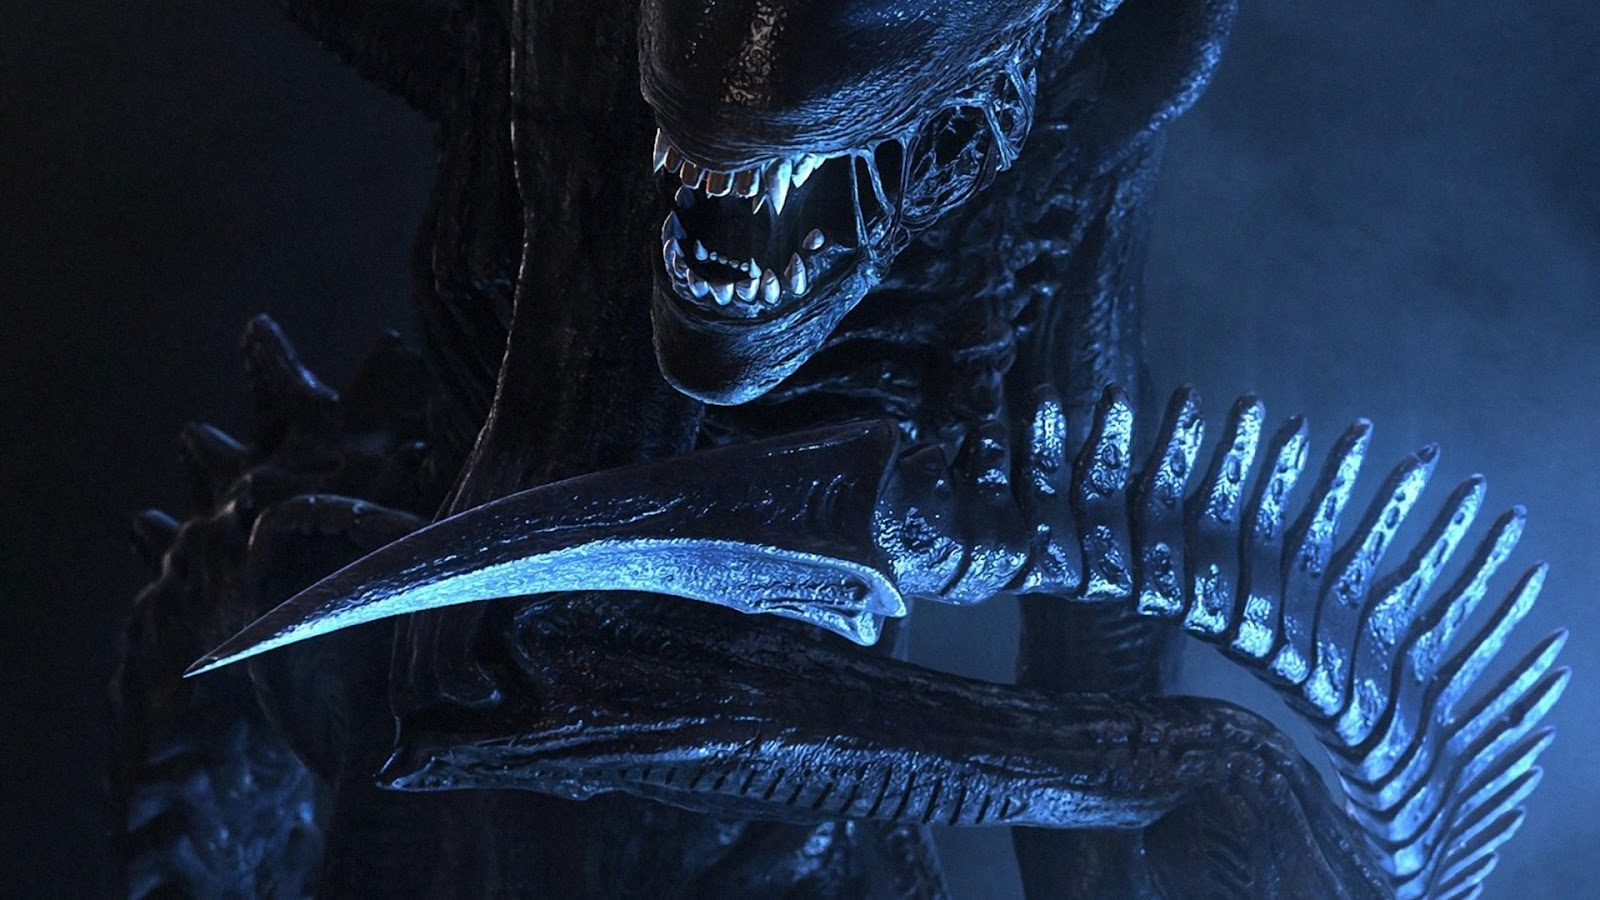 http://3.bp.blogspot.com/-YxEoi9ZZrh8/UBHhPHgsXvI/AAAAAAAACT4/iOsKUoEjdMA/s1600/Alien+Series+Movie+wallpapers+3.jpg